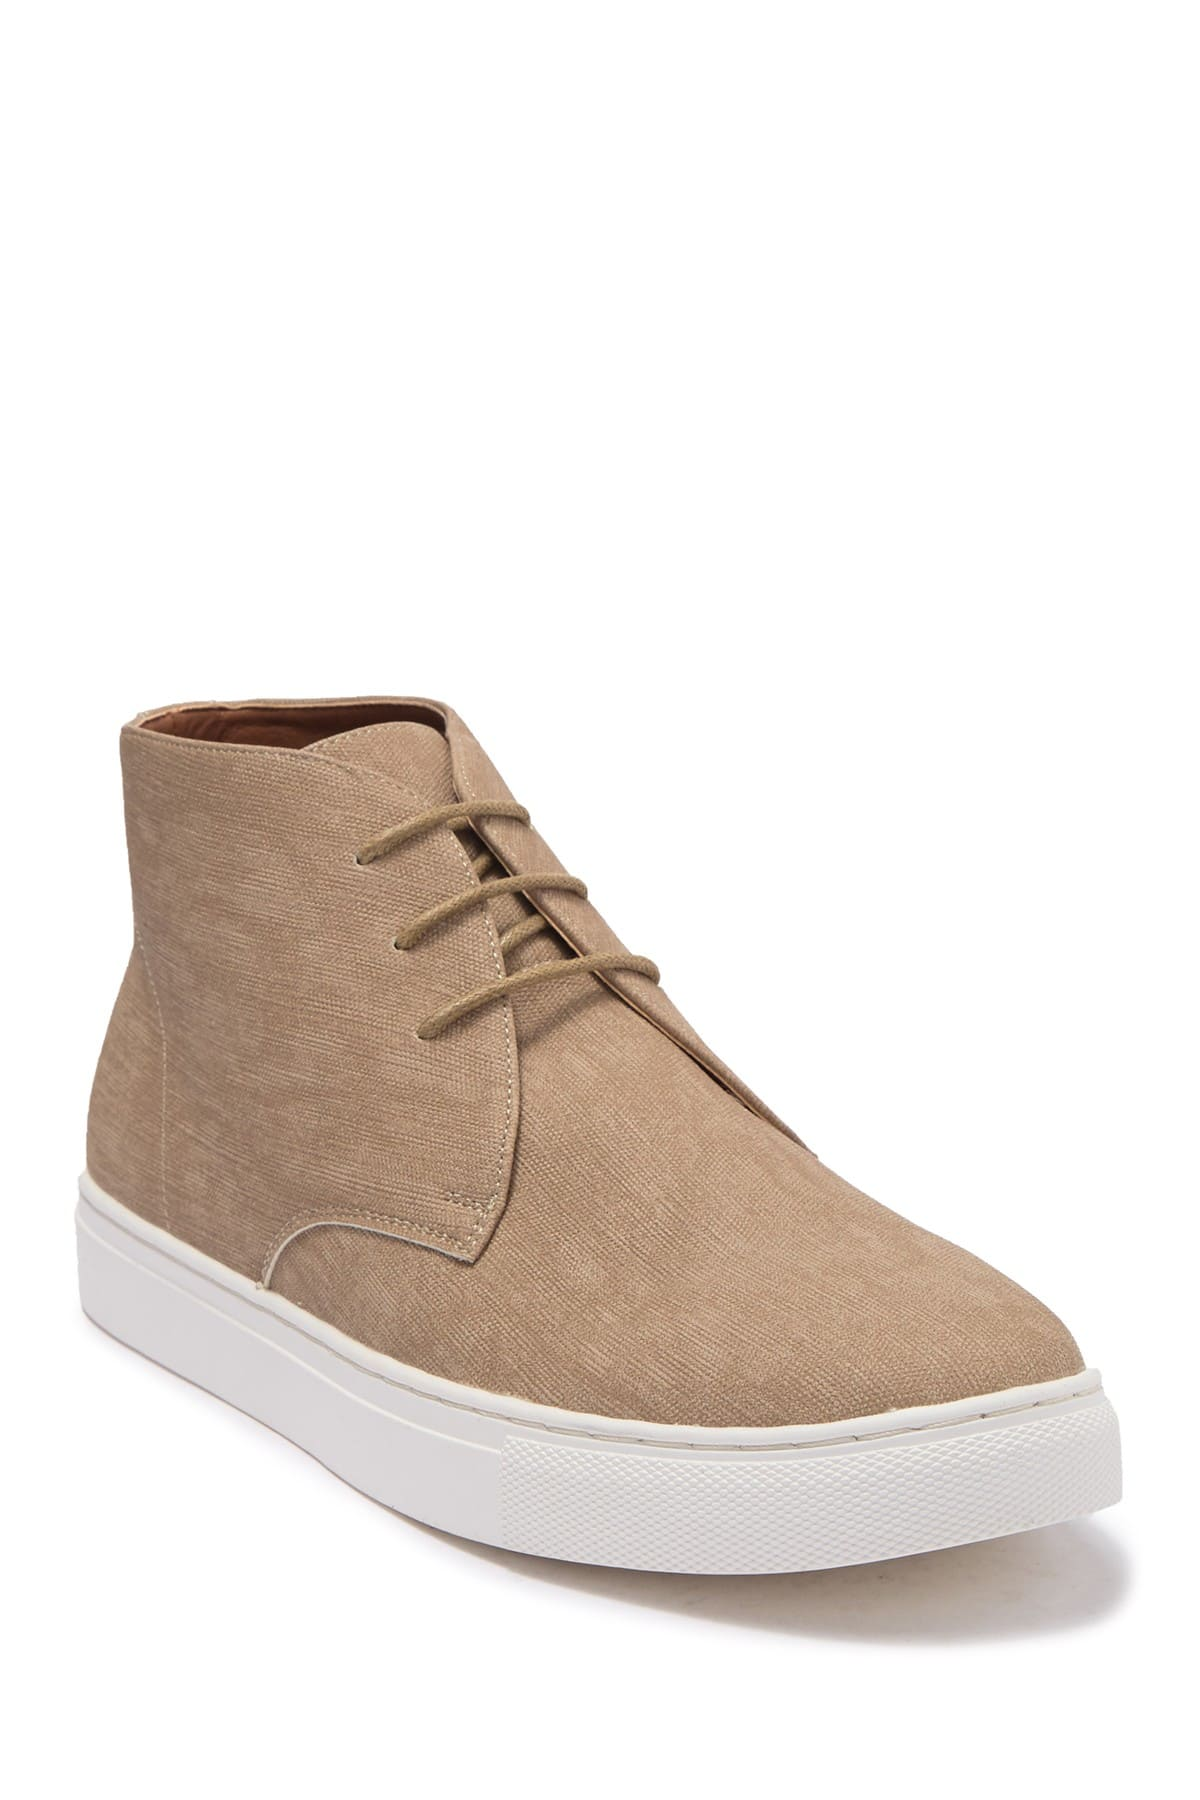 Men's SUPPLY LAB Cody Sneaker, Dice Lace Up $26.23, Roan Ronn Suede Slip-On Sneaker $24.29 + ship